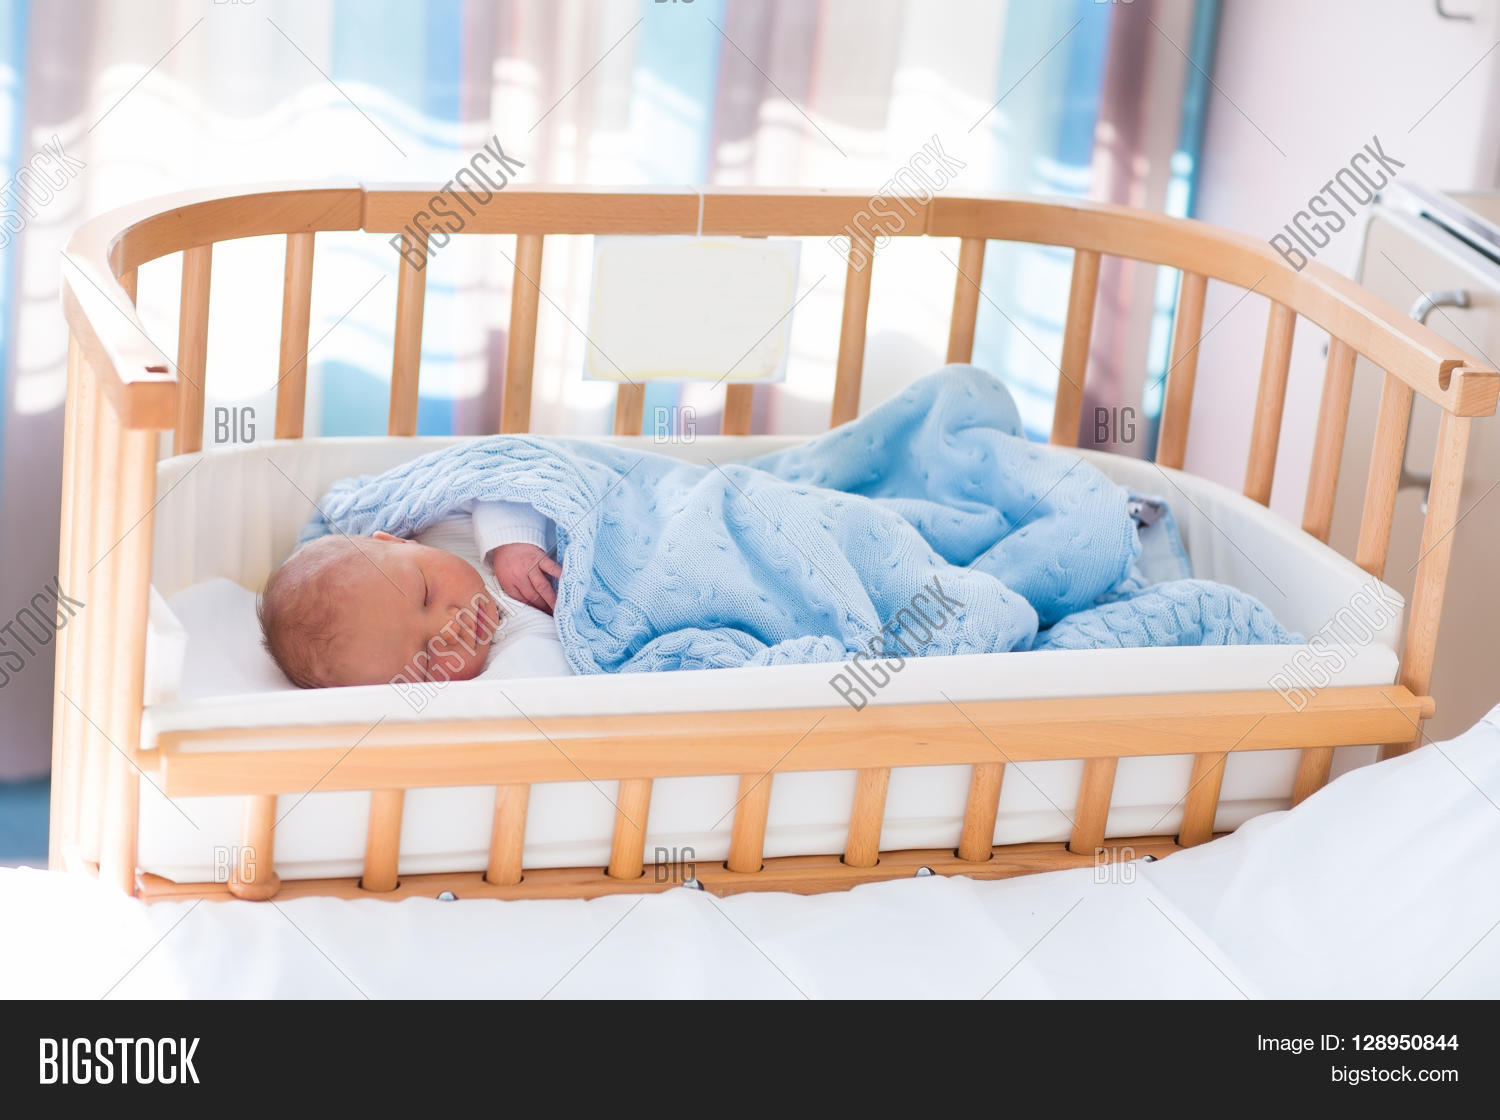 Newborn Baby Hospital Image & Photo (Free Trial) | Bigstock